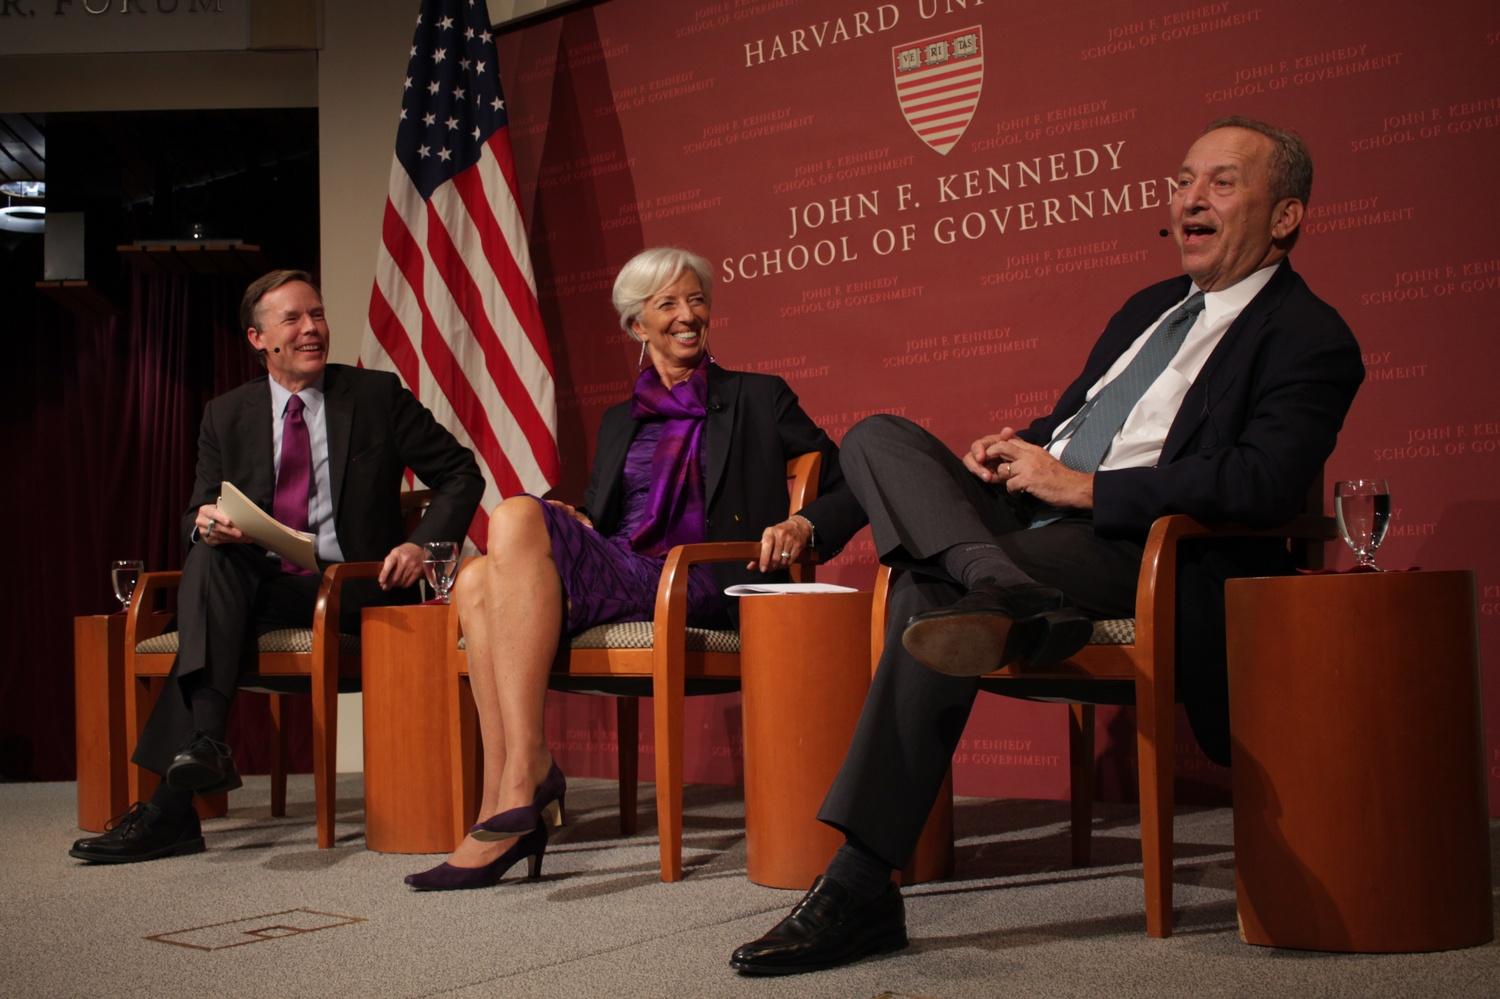 IMF Managing Director Christine Lagarde speaks at a 2017 event. Harvard economist Gita Gopinath will join the IMF as its cheif economist in January